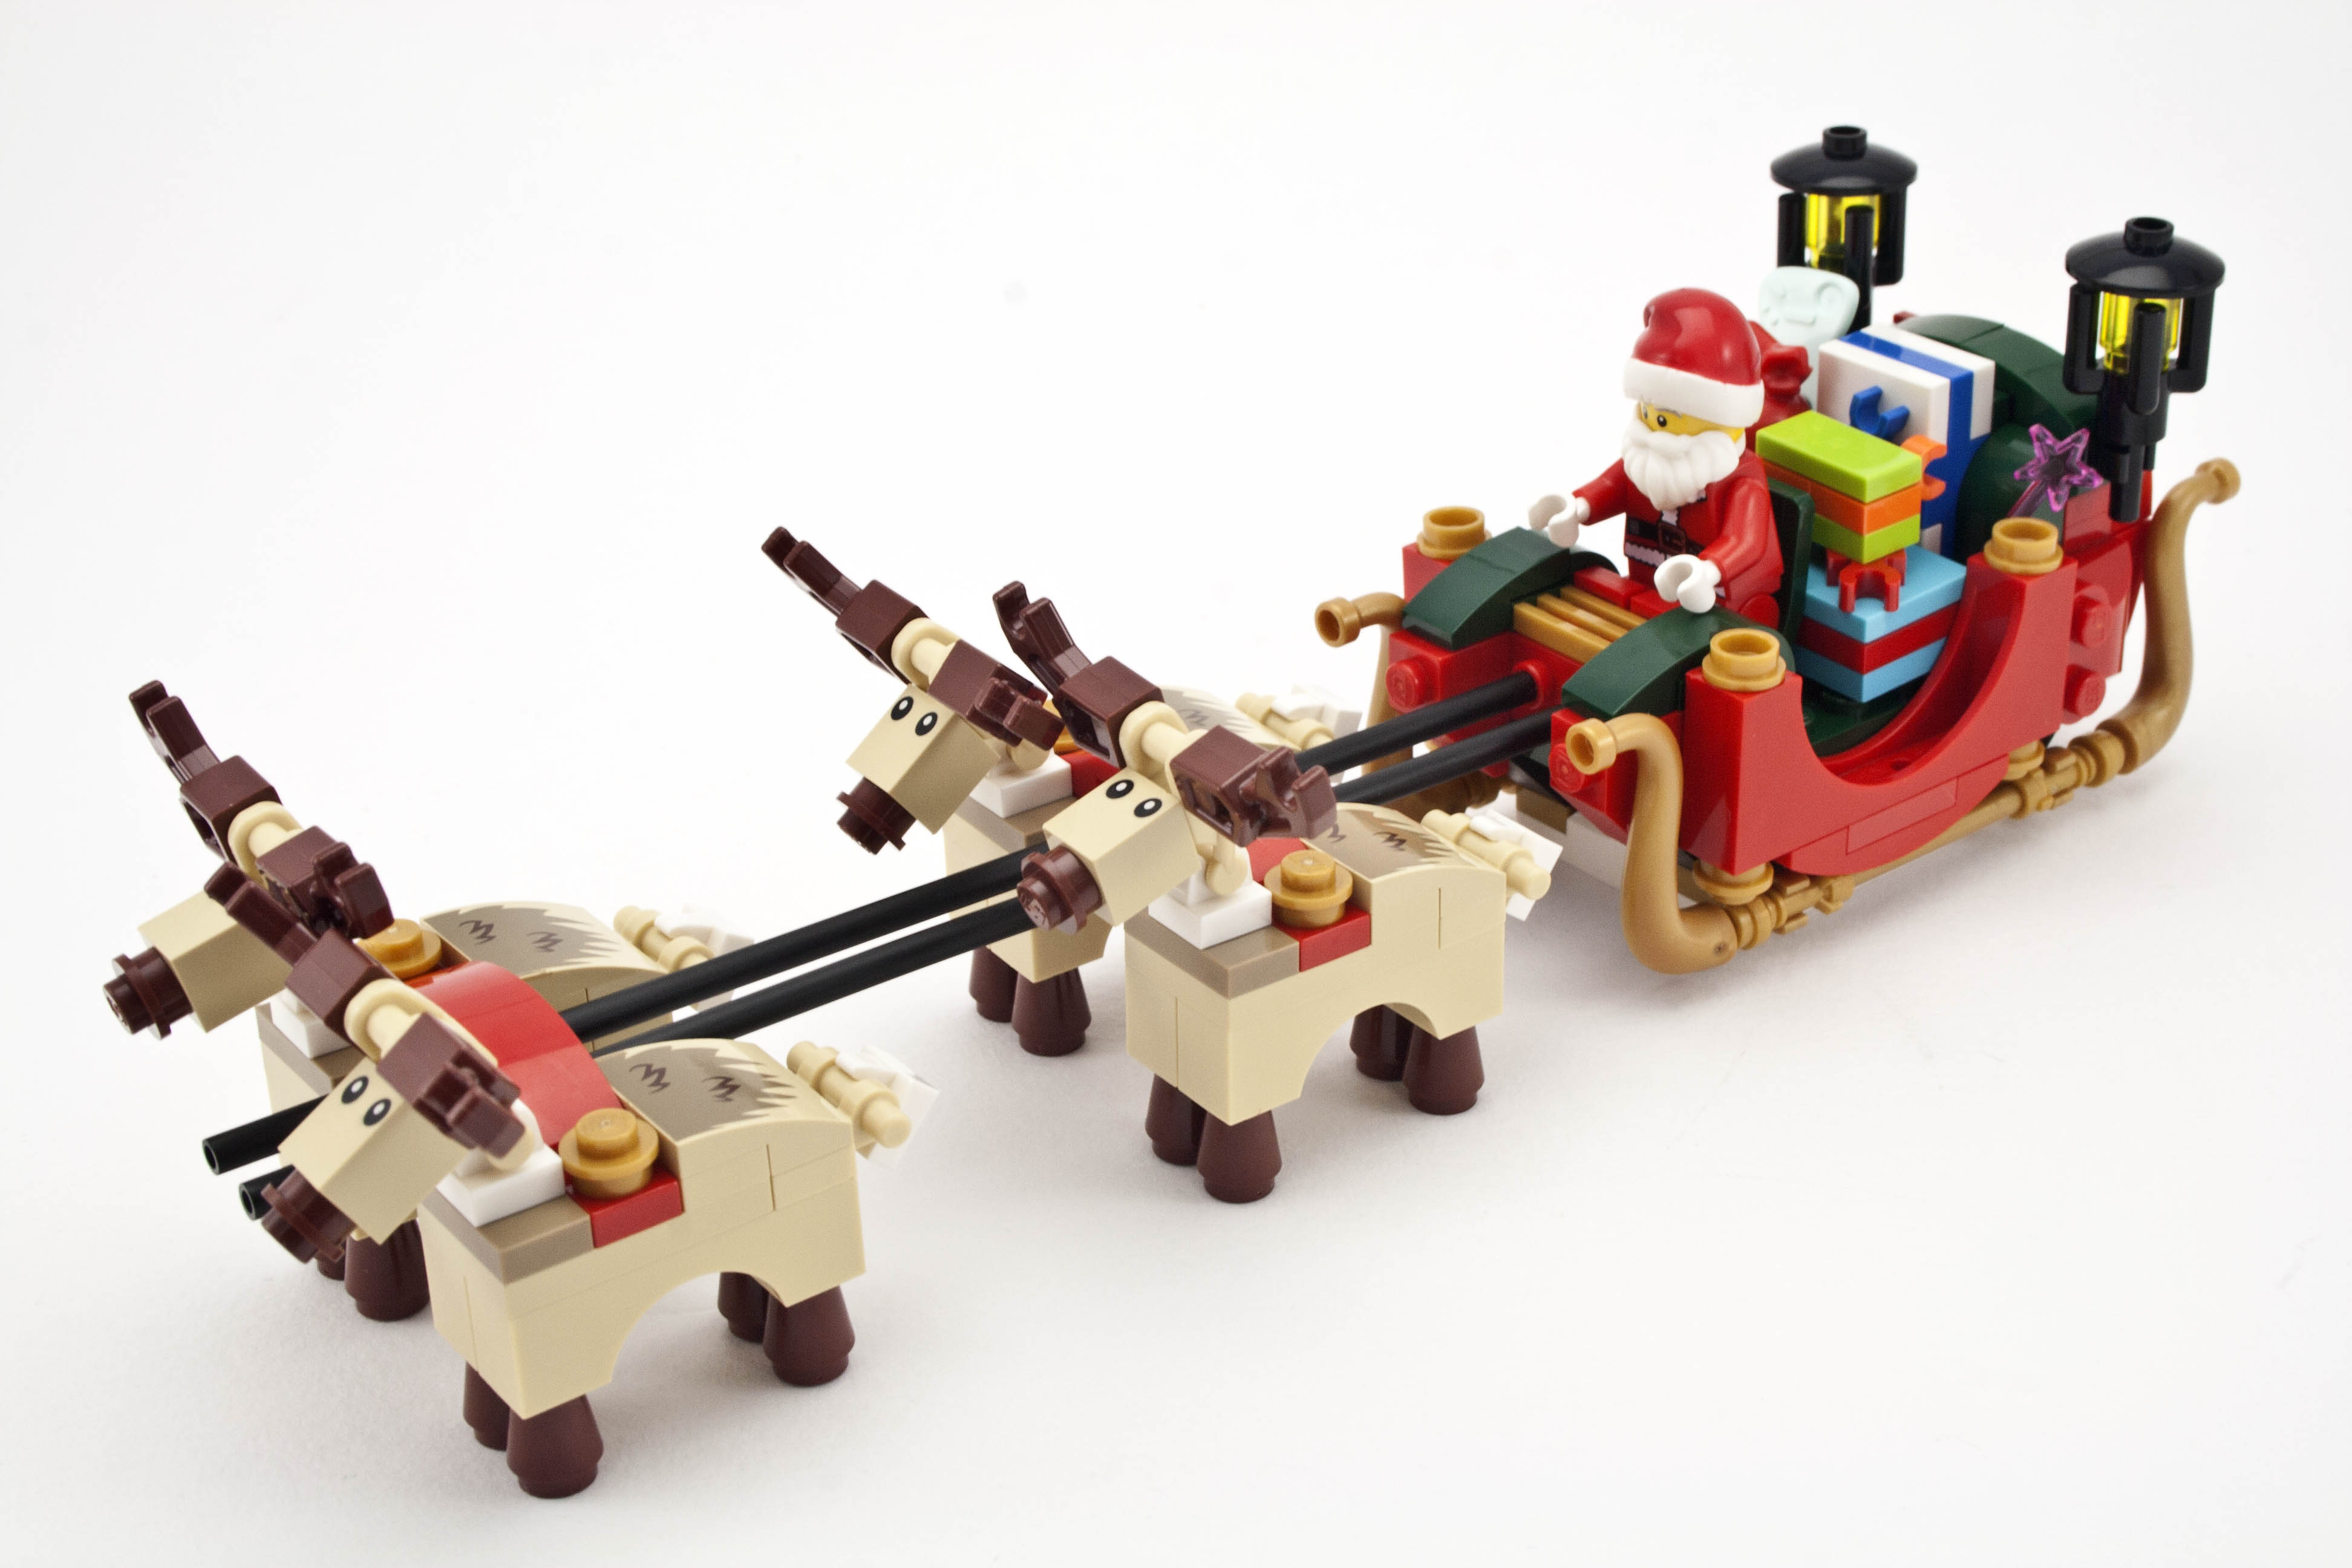 Rebrickable - Review - 10245 Santa's Workshop